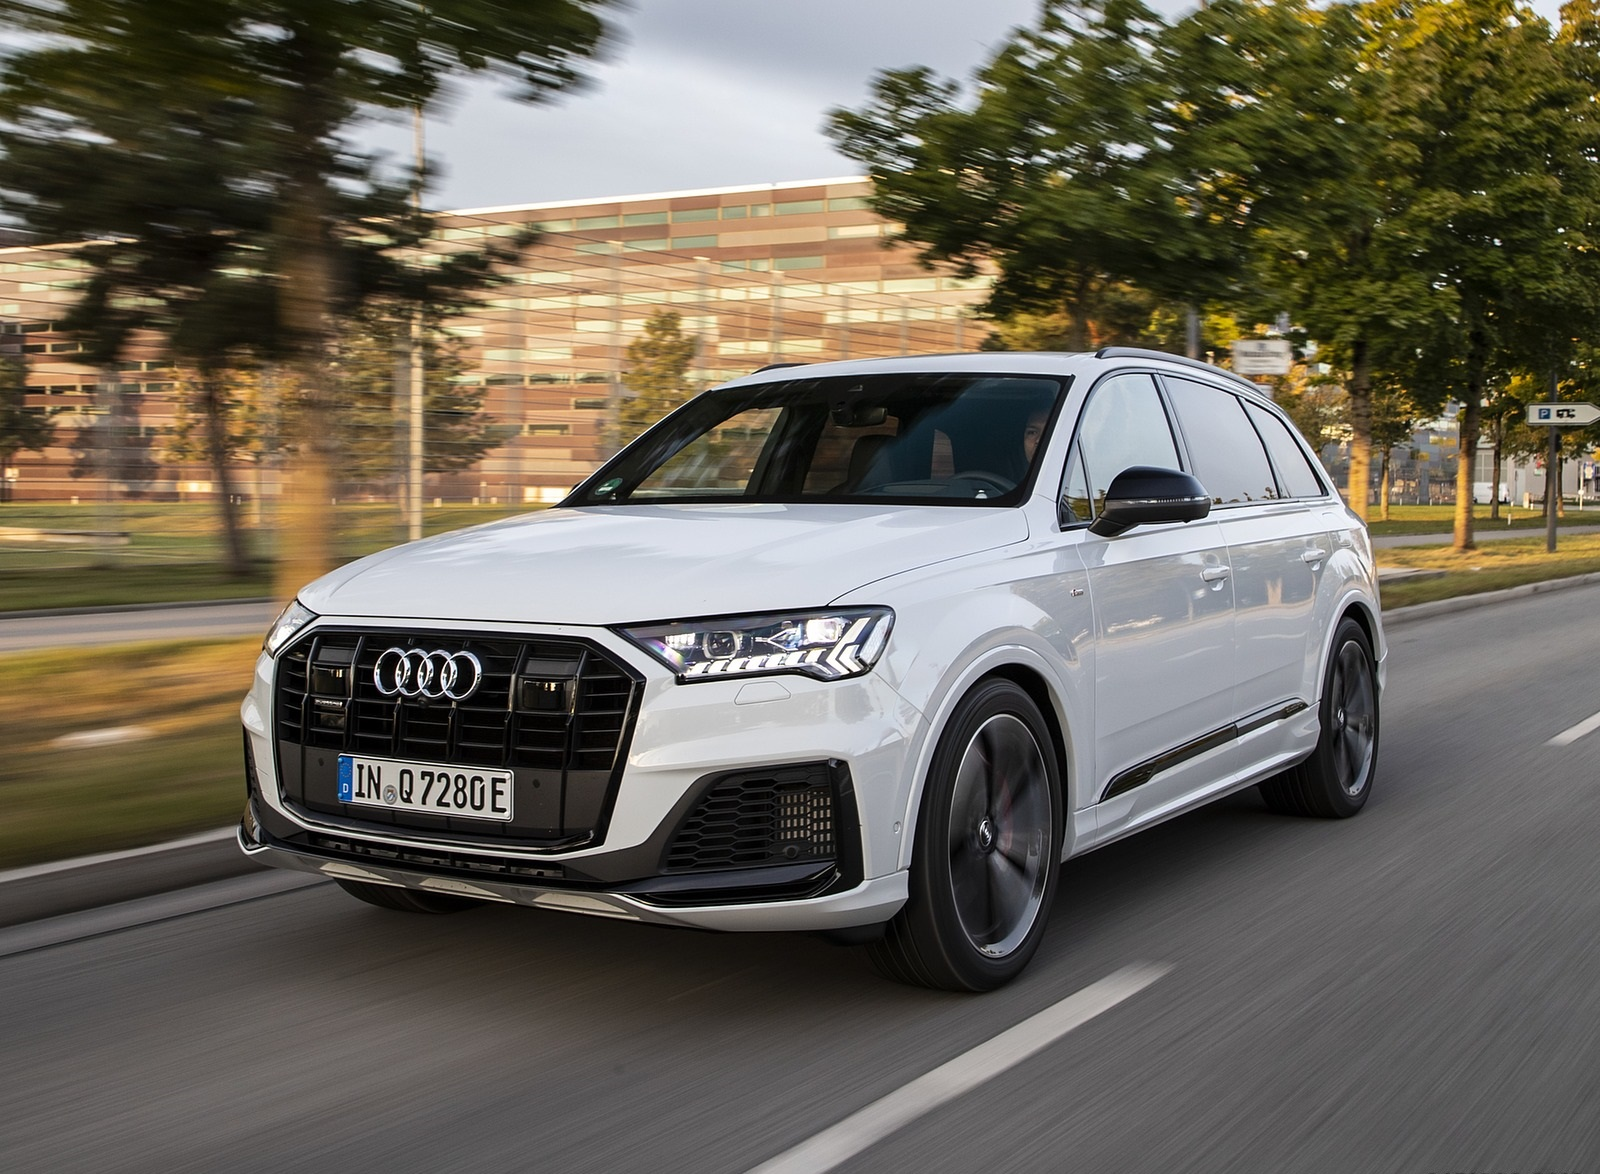 2020 Audi Q7 TFSI e quattro Plug-In Hybrid (Color: Glacier White) Front Three-Quarter Wallpapers (1)